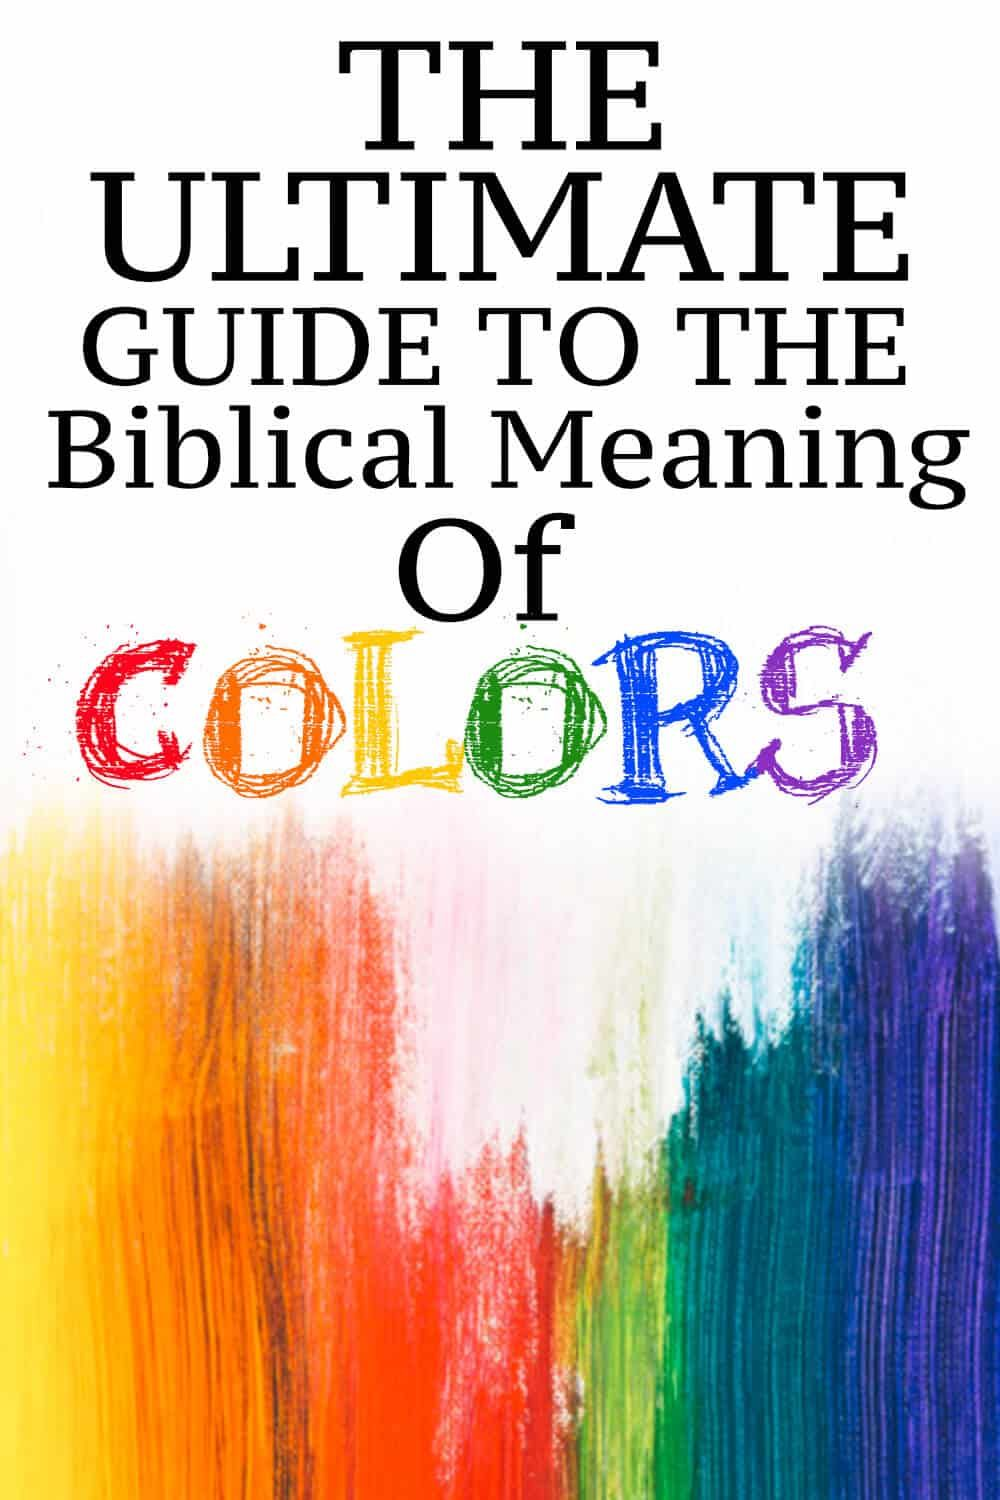 The Ultimate Guide To The Biblical Meaning Of Colors With Images